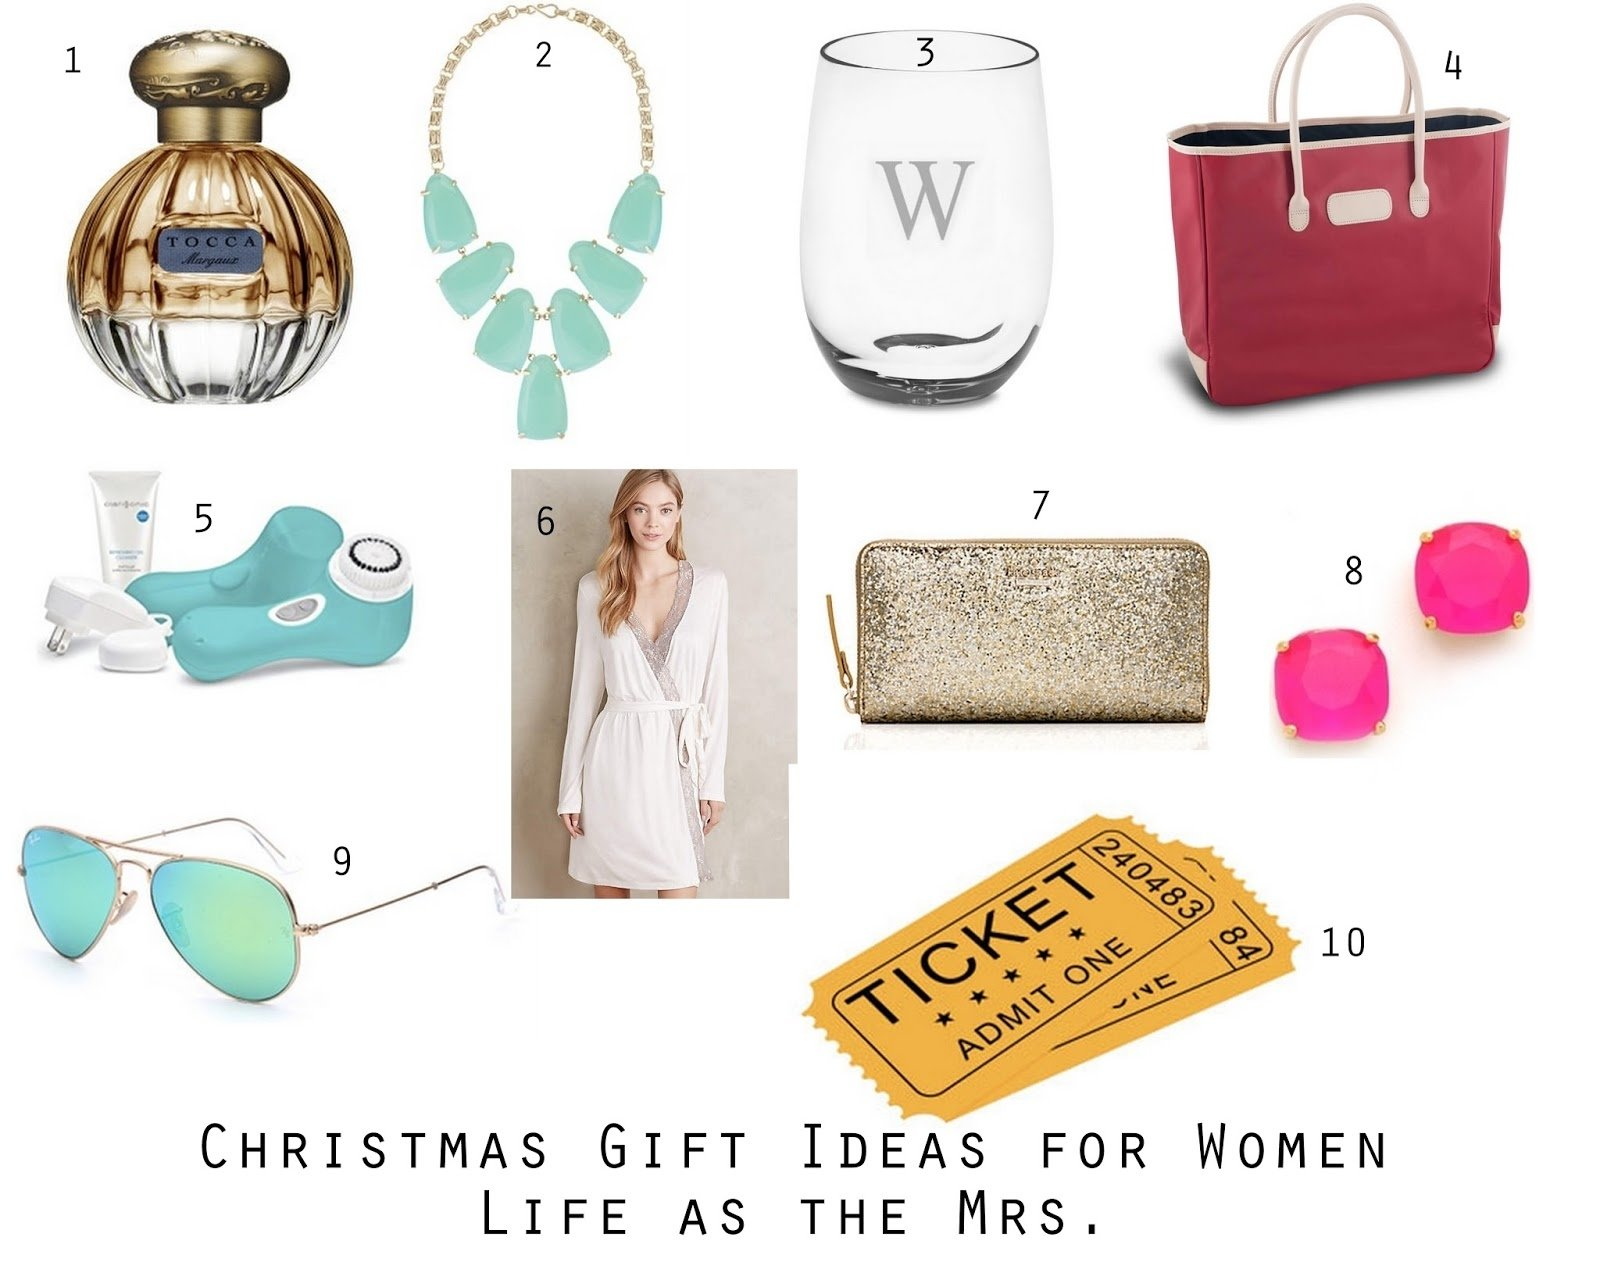 life as the mrs.: thoughts for thursday: christmas gift ideas for women